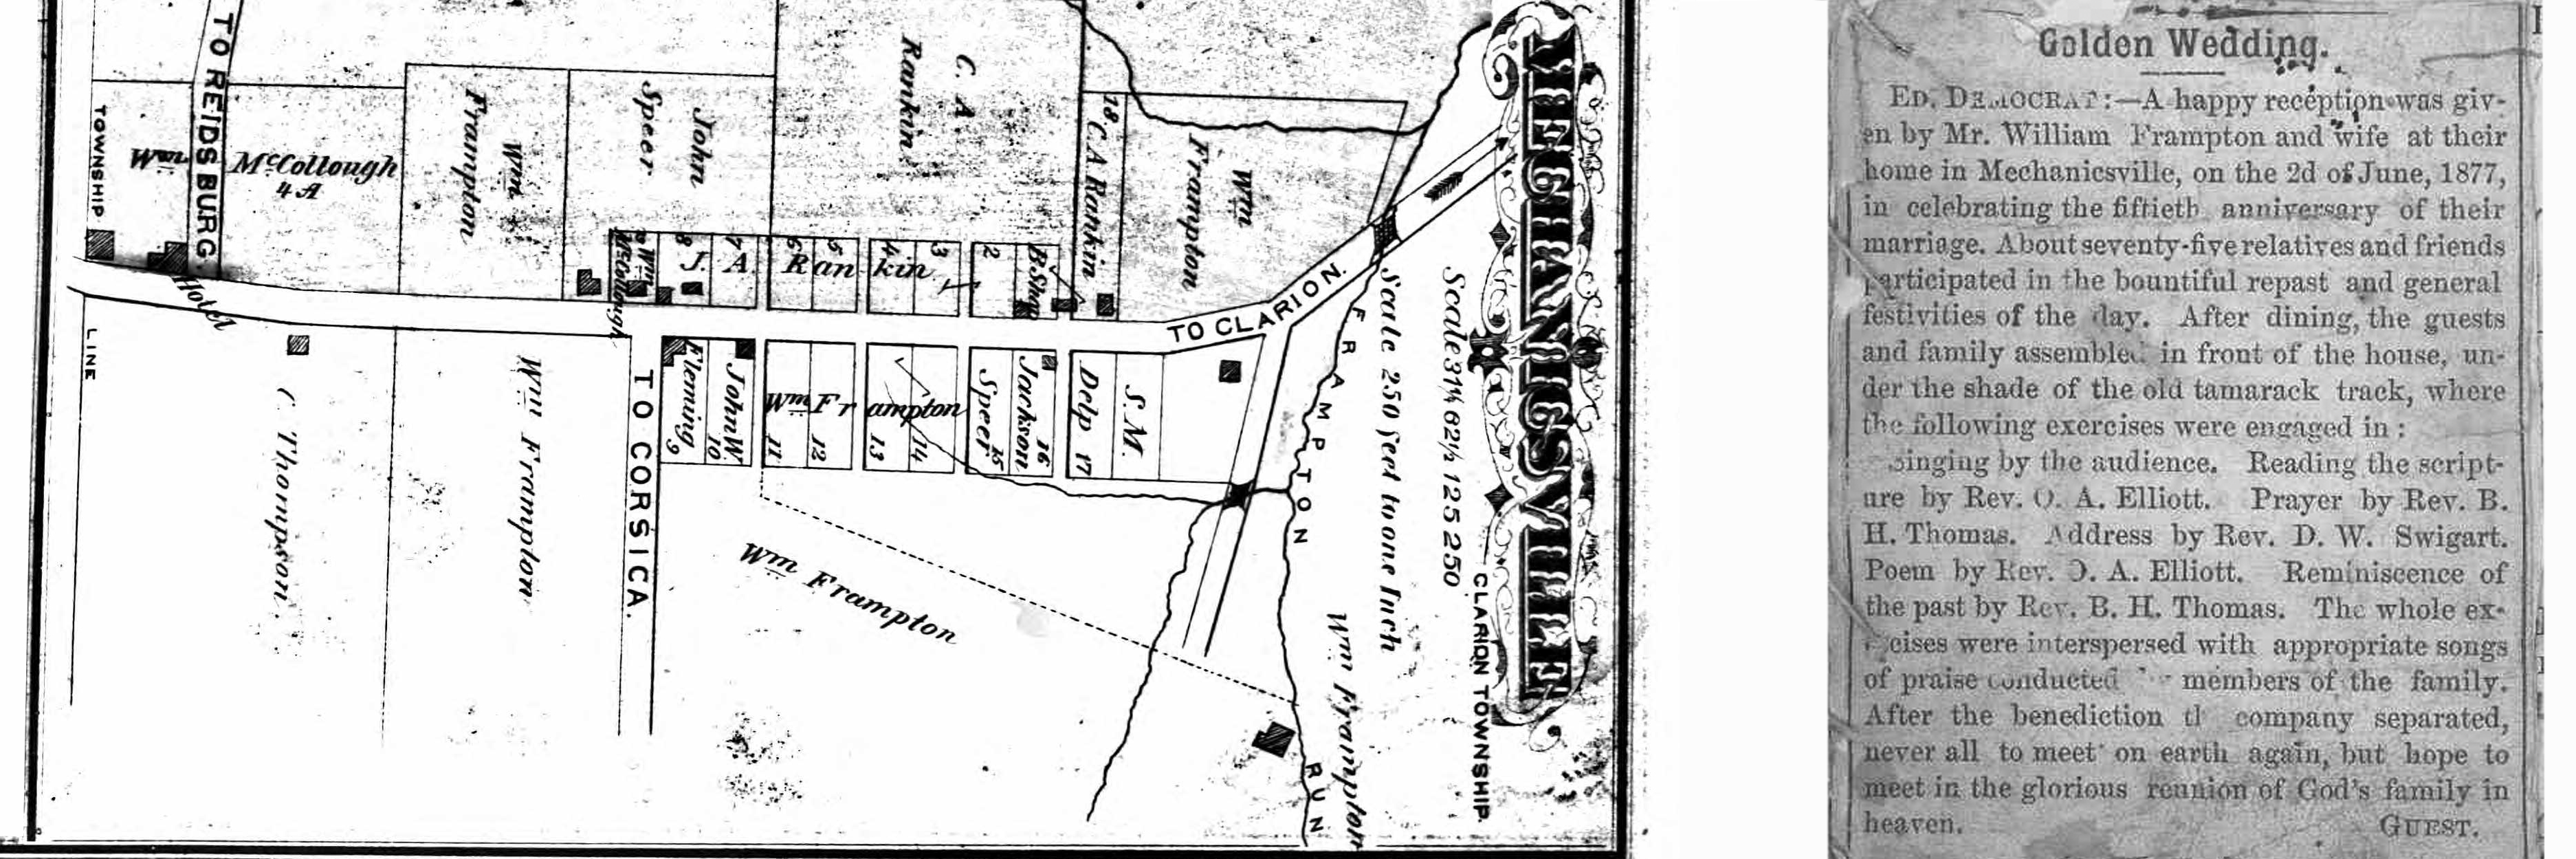 Mechanicsville 1877